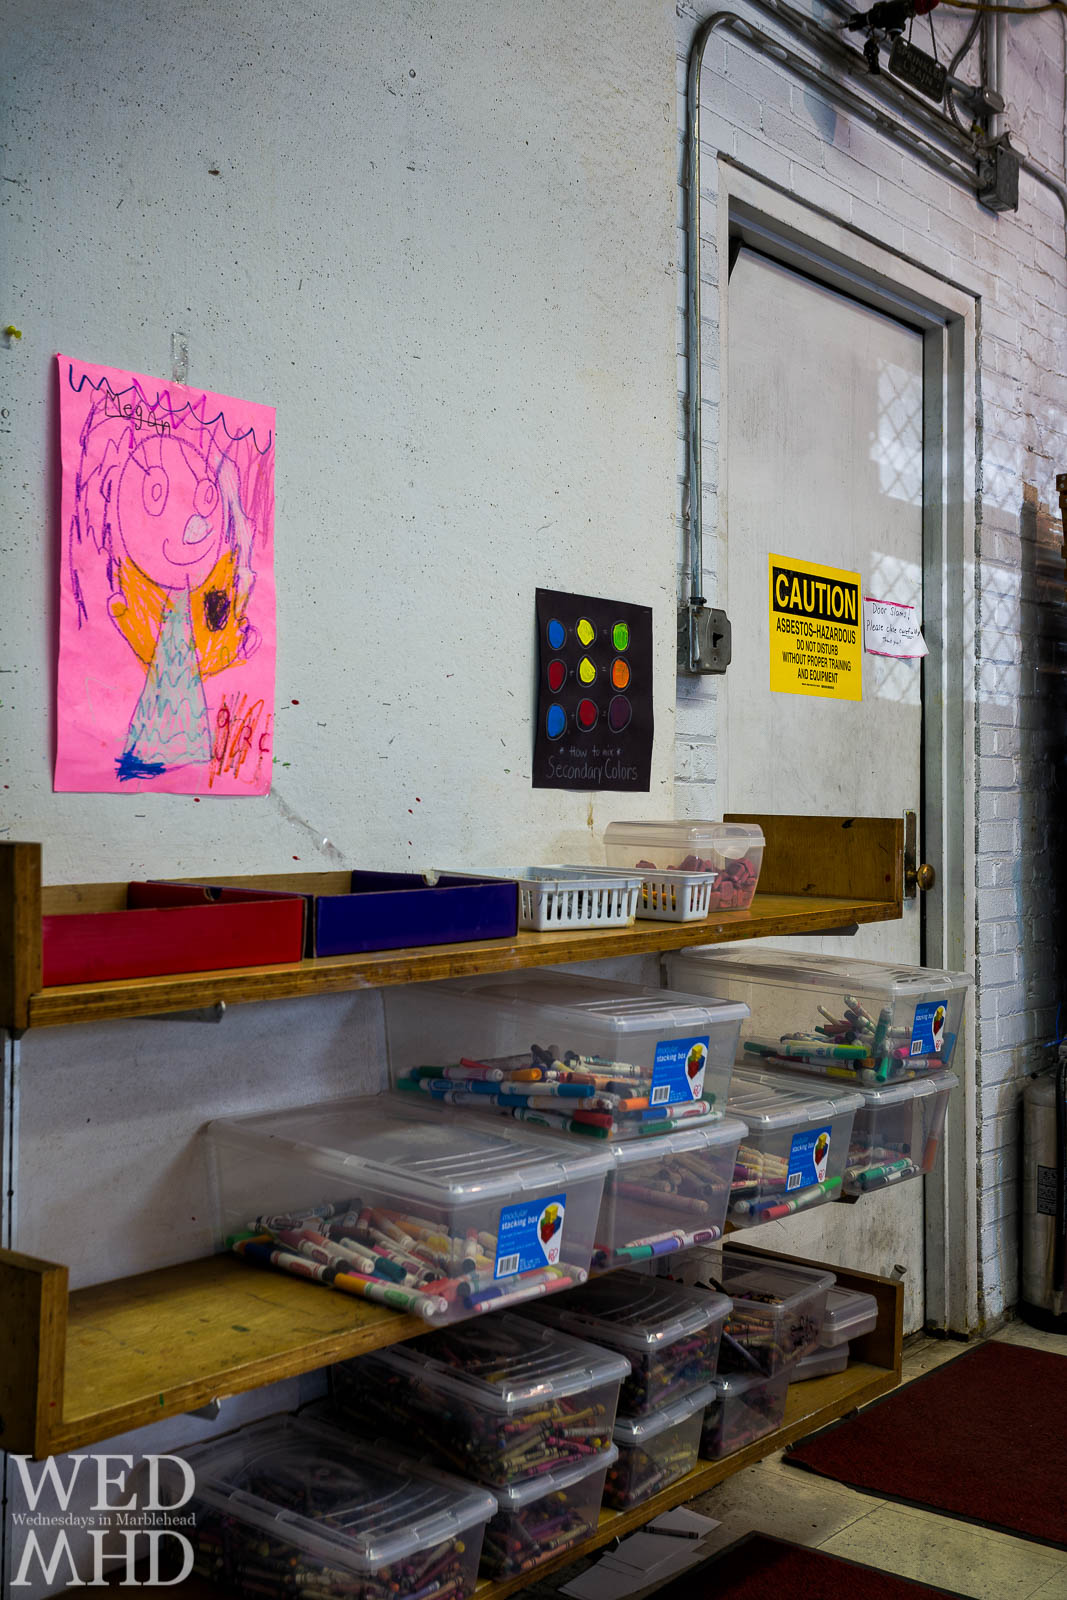 A sign cautions about asbestos exposure near art supplies and a child's drawing at the Gerry School